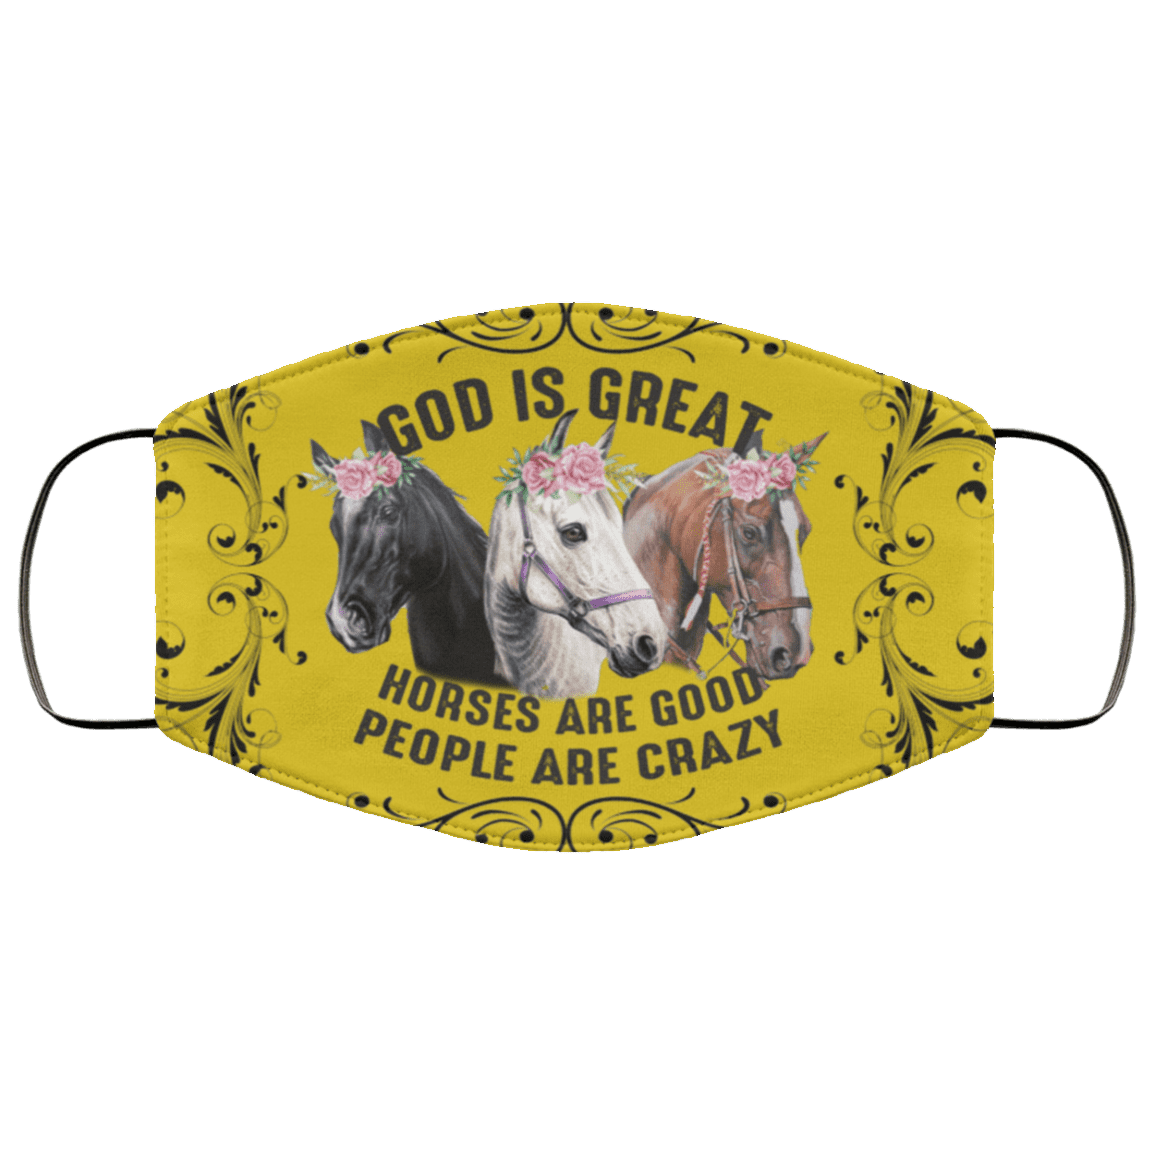 Funny Horse Mask God Is Great Horses Are Good People Are Crazy Horse Floral Mask Cubebik